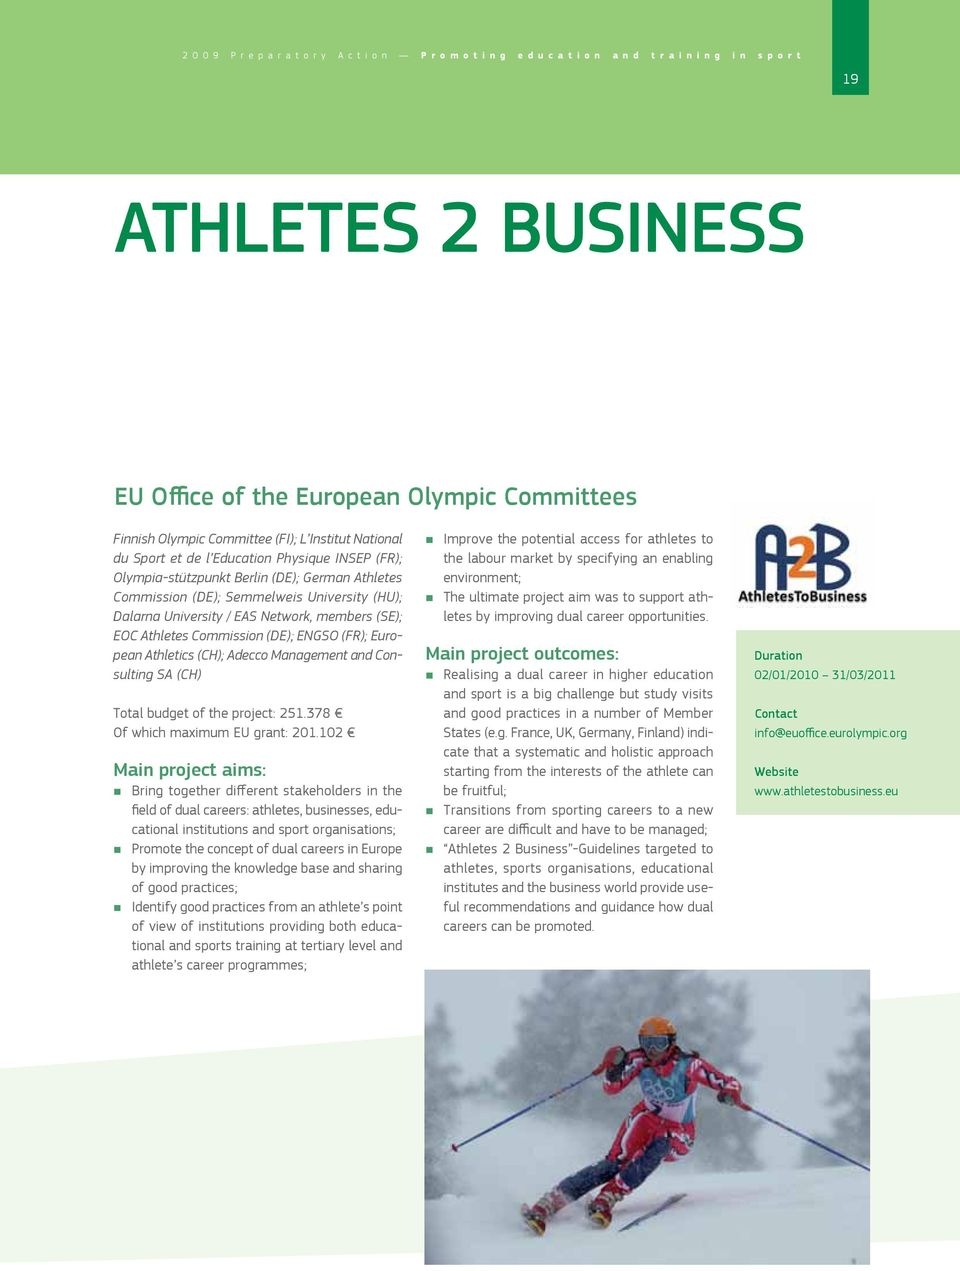 Commission (DE); ENGSO (FR); European Athletics (CH); Adecco Management and Consulting SA (CH) Total budget of the project: 251.378 Of which maximum EU grant: 201.